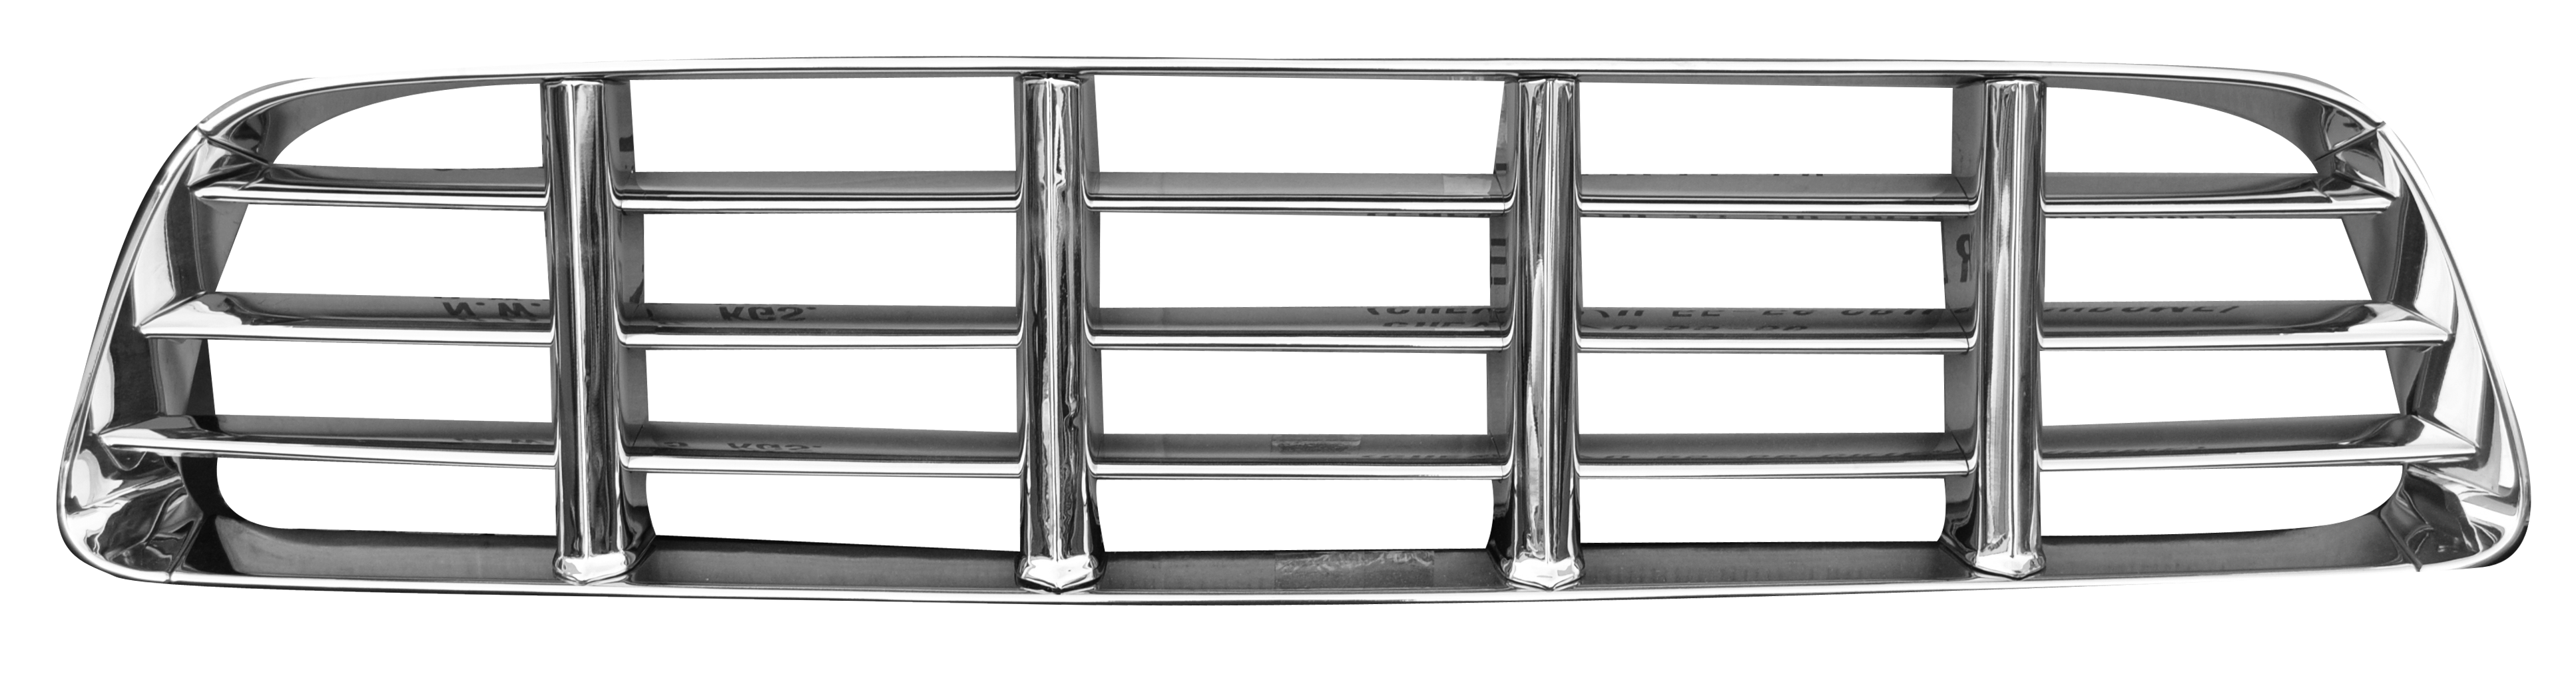 Chrome grille png. C assembly nsane